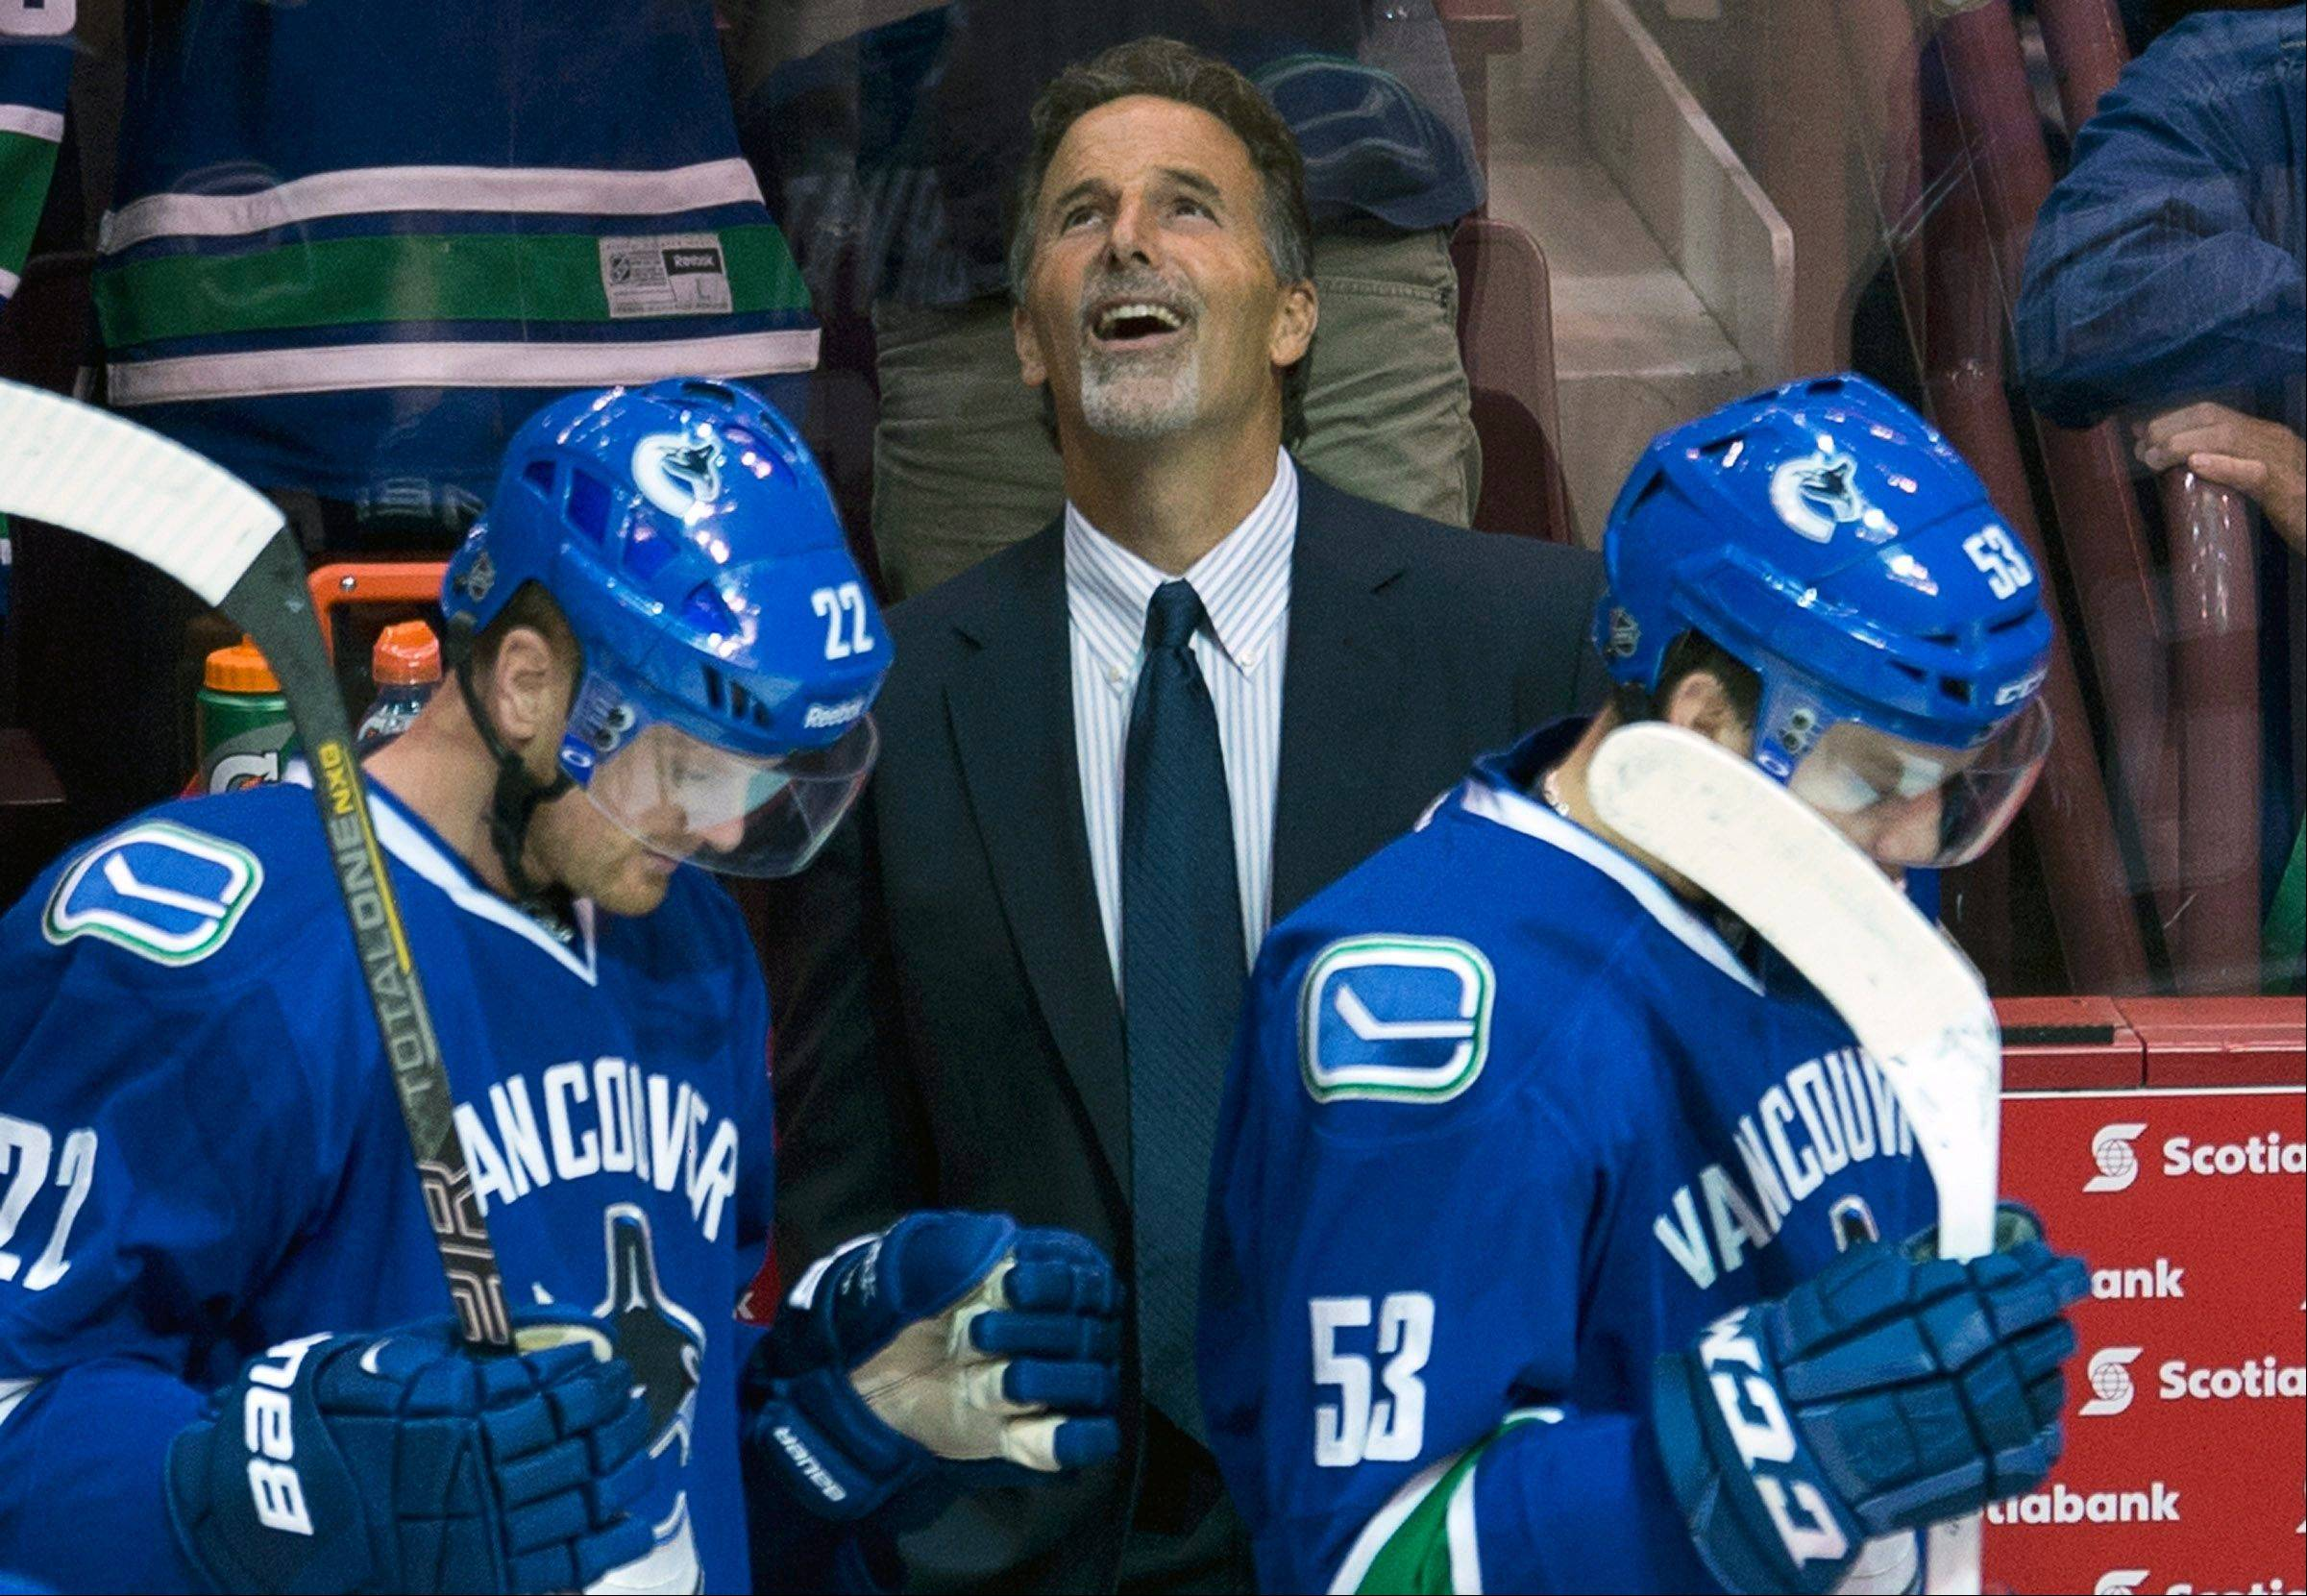 Keeping goalie Roberto Luongo and trading Cory Schneider will make Vancouver head coach John Tortorella's job more difficult. Even though he's smiling here, Tortorella's critics believe his tough-guy act will wear thin in Canada.